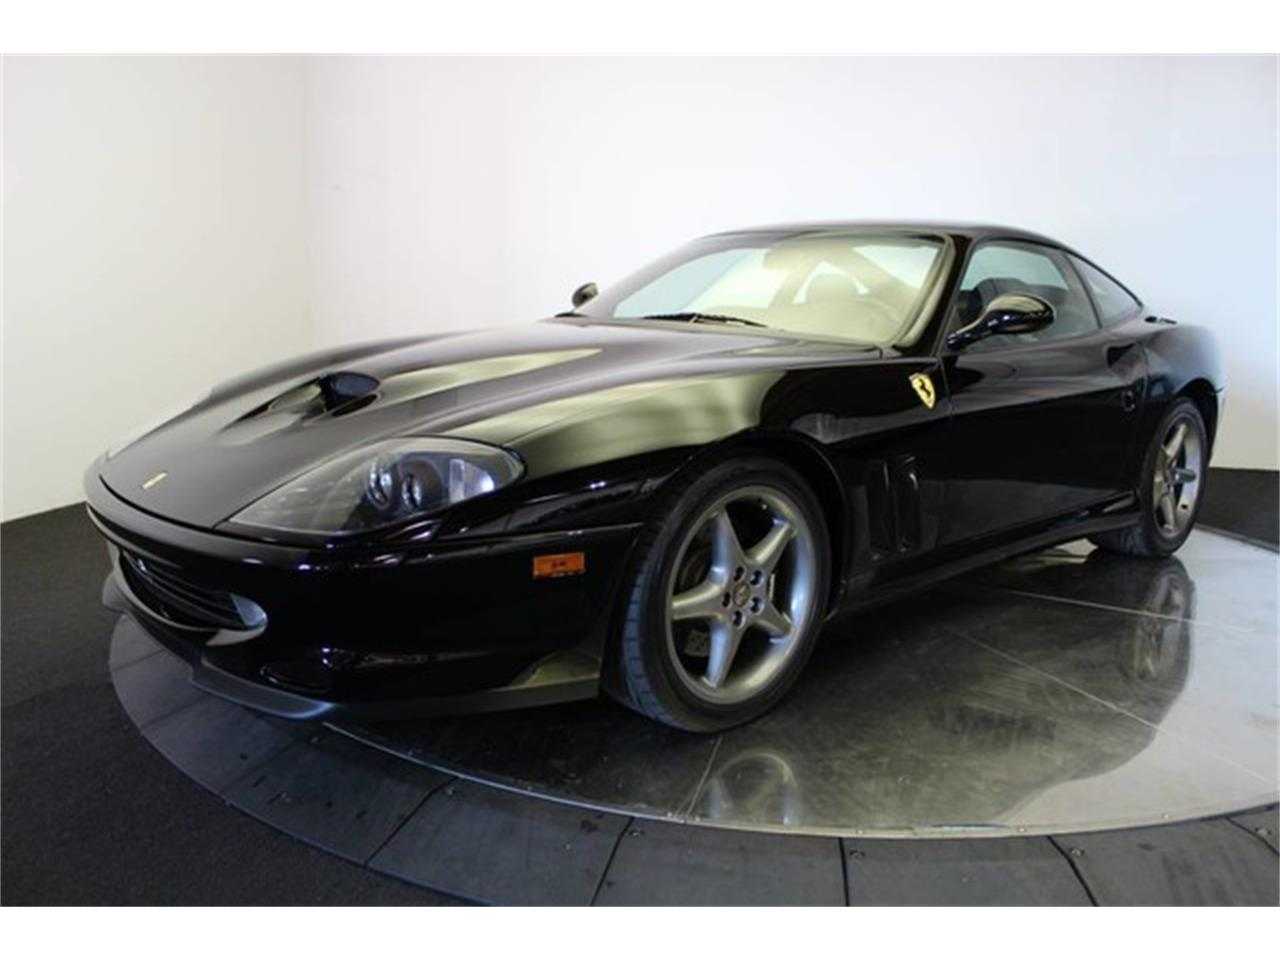 Large Picture of '00 Ferrari 550 Maranello - $139,900.00 - JKZ6